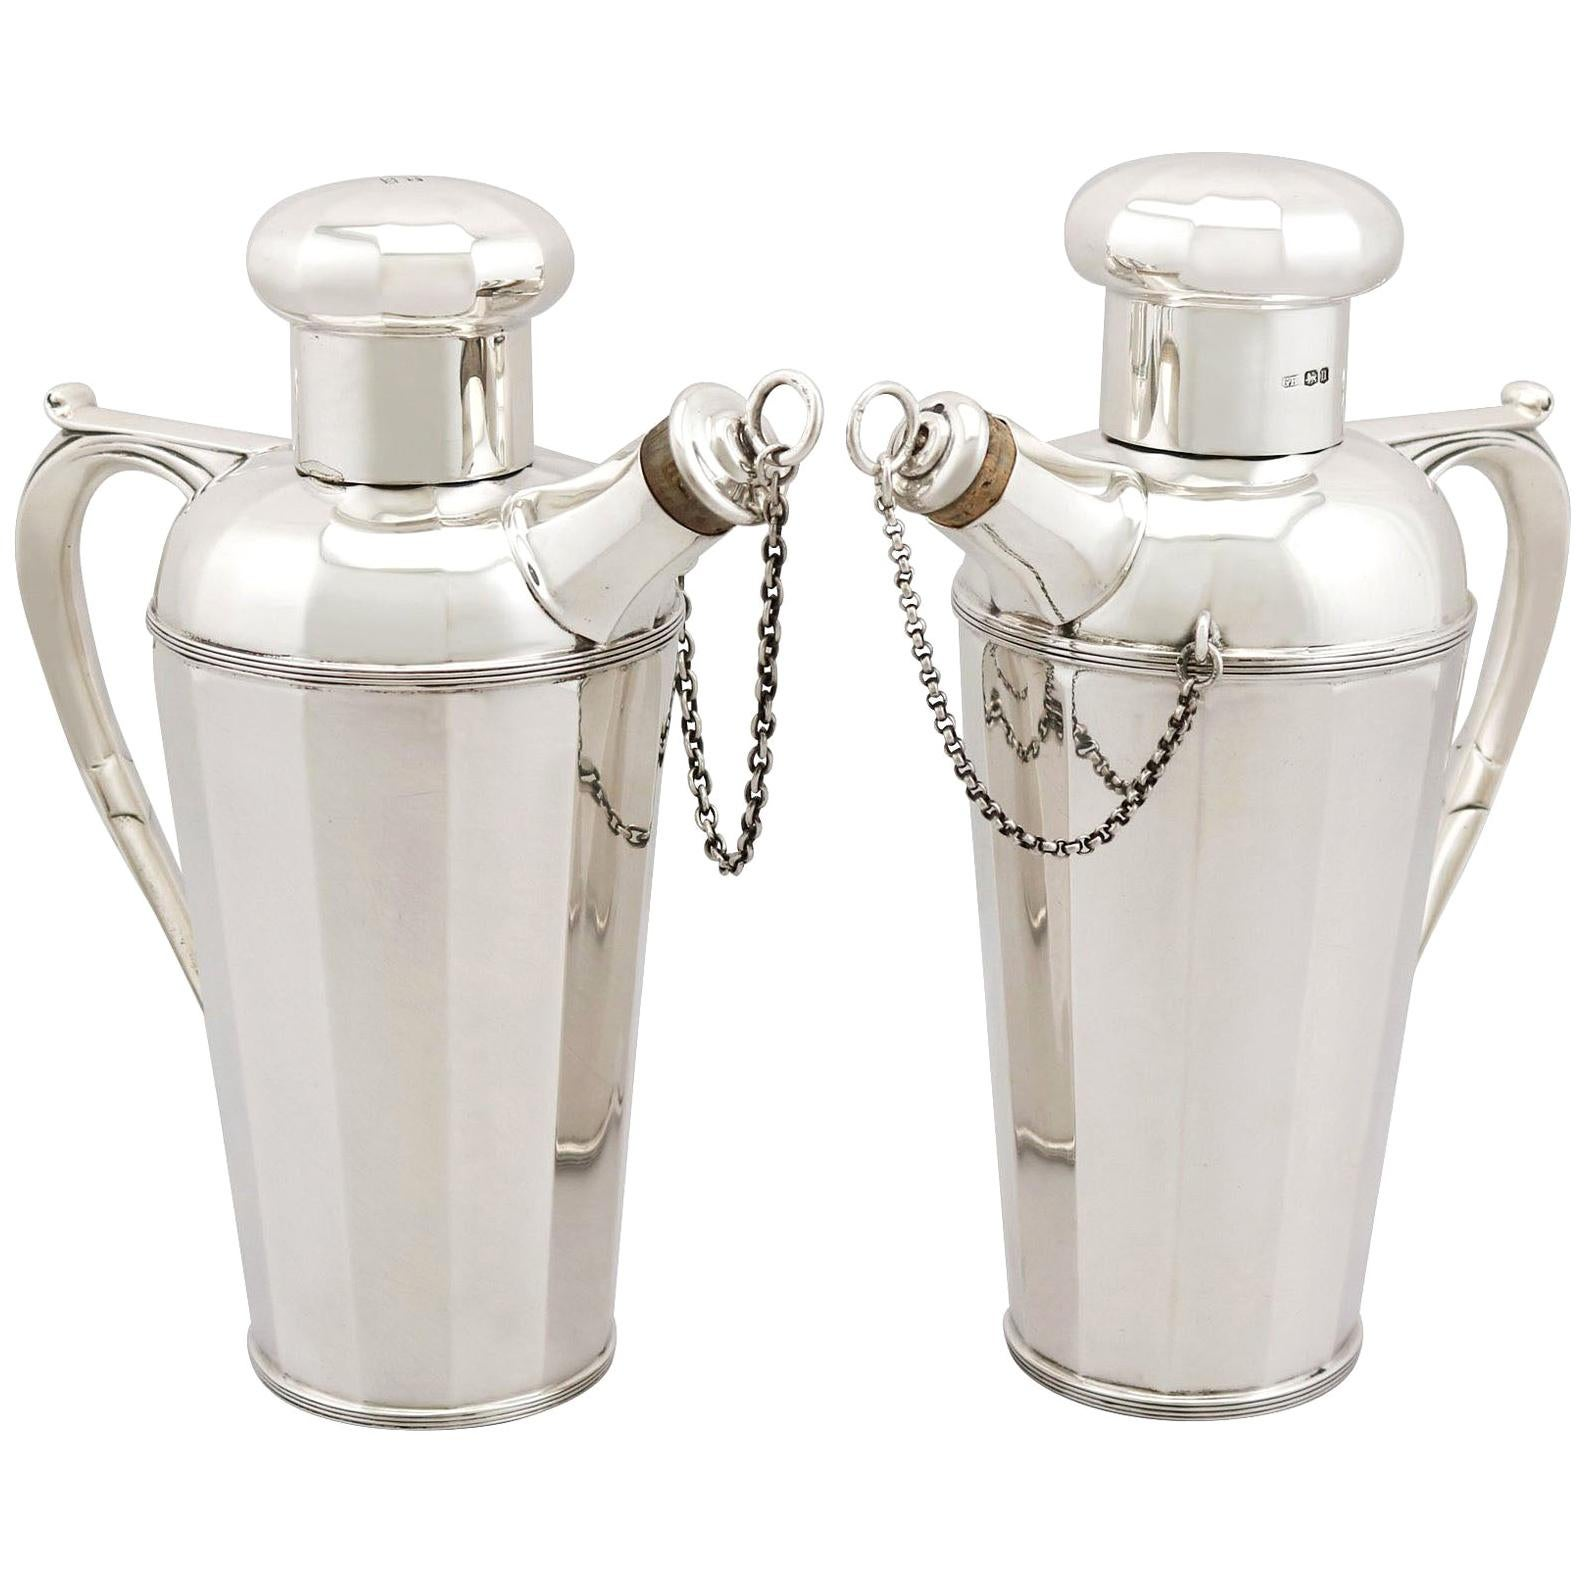 Antique Art Deco Style Sterling Silver Cocktail Shakers, 1930